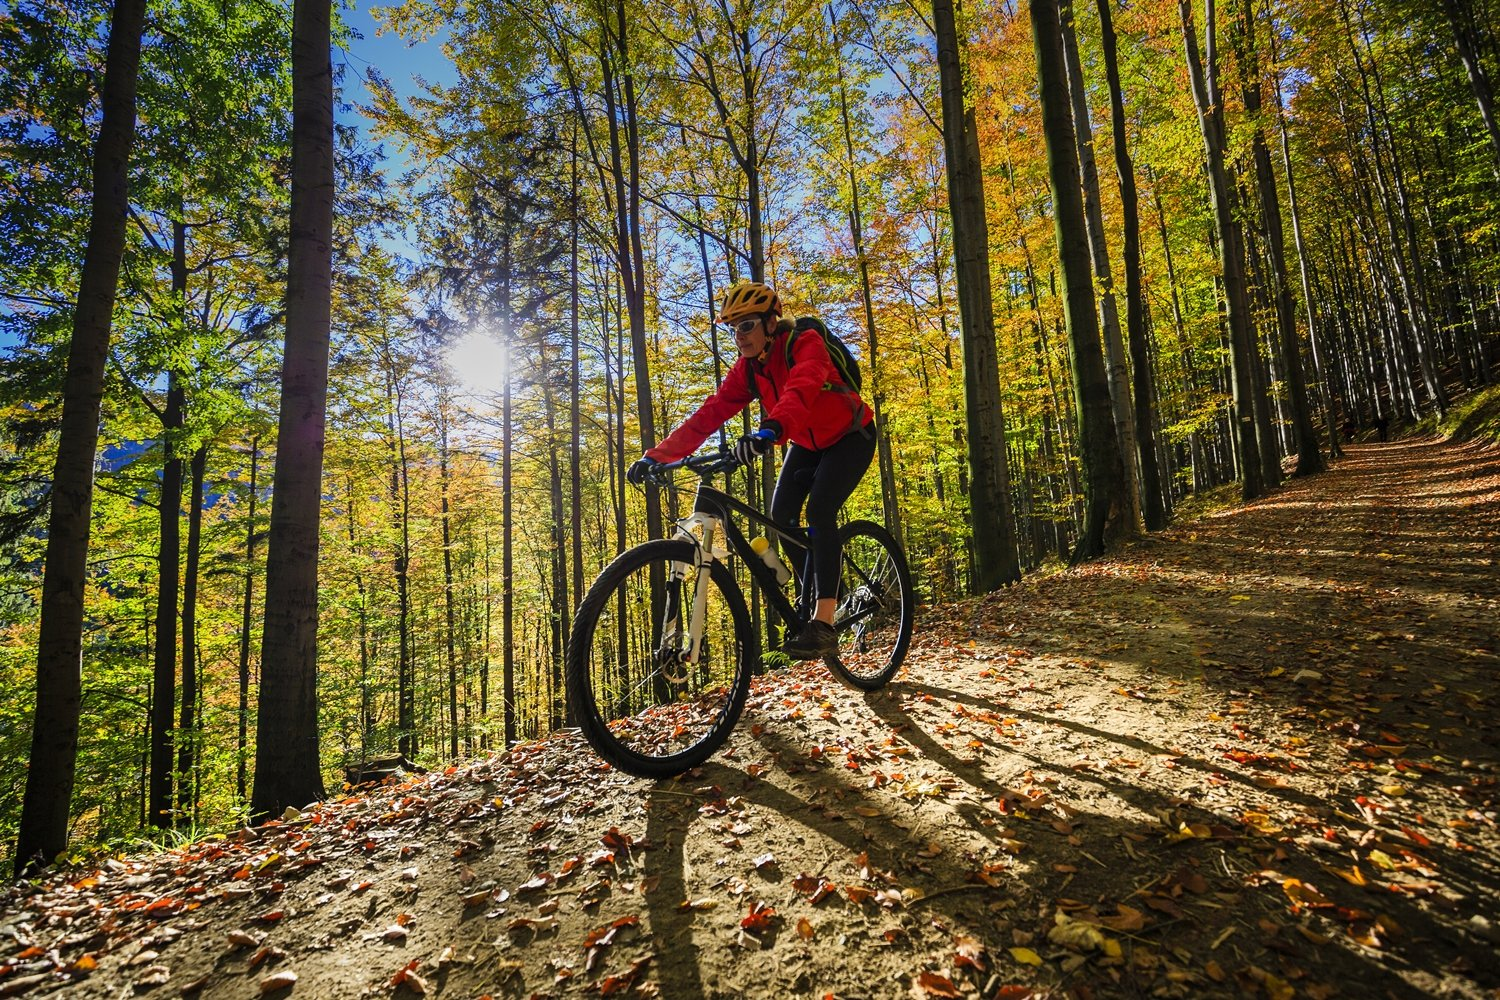 Four reasons to ride: what type of cyclist are you?